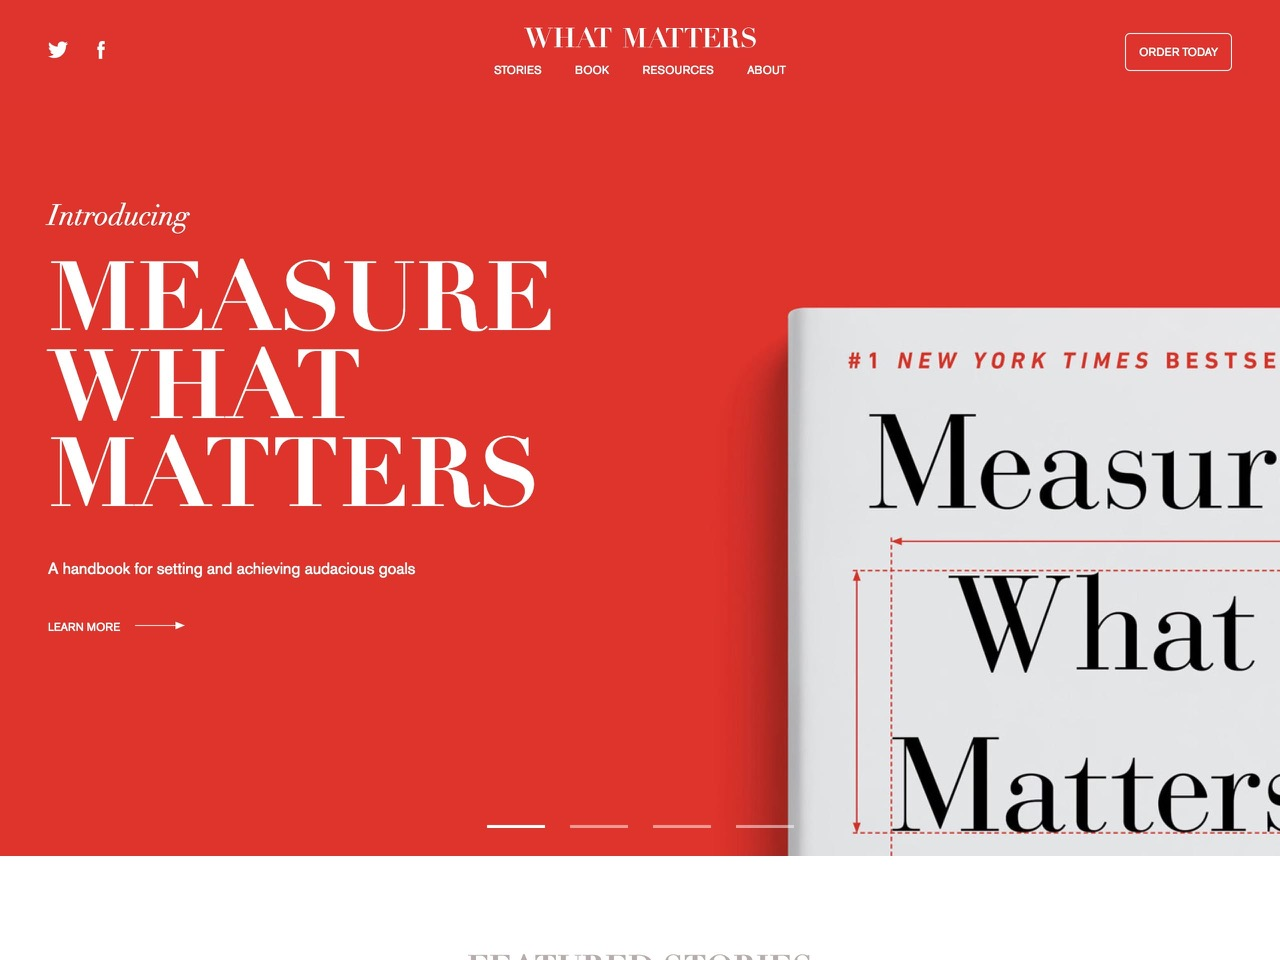 Introducing measure what matters by john doerr